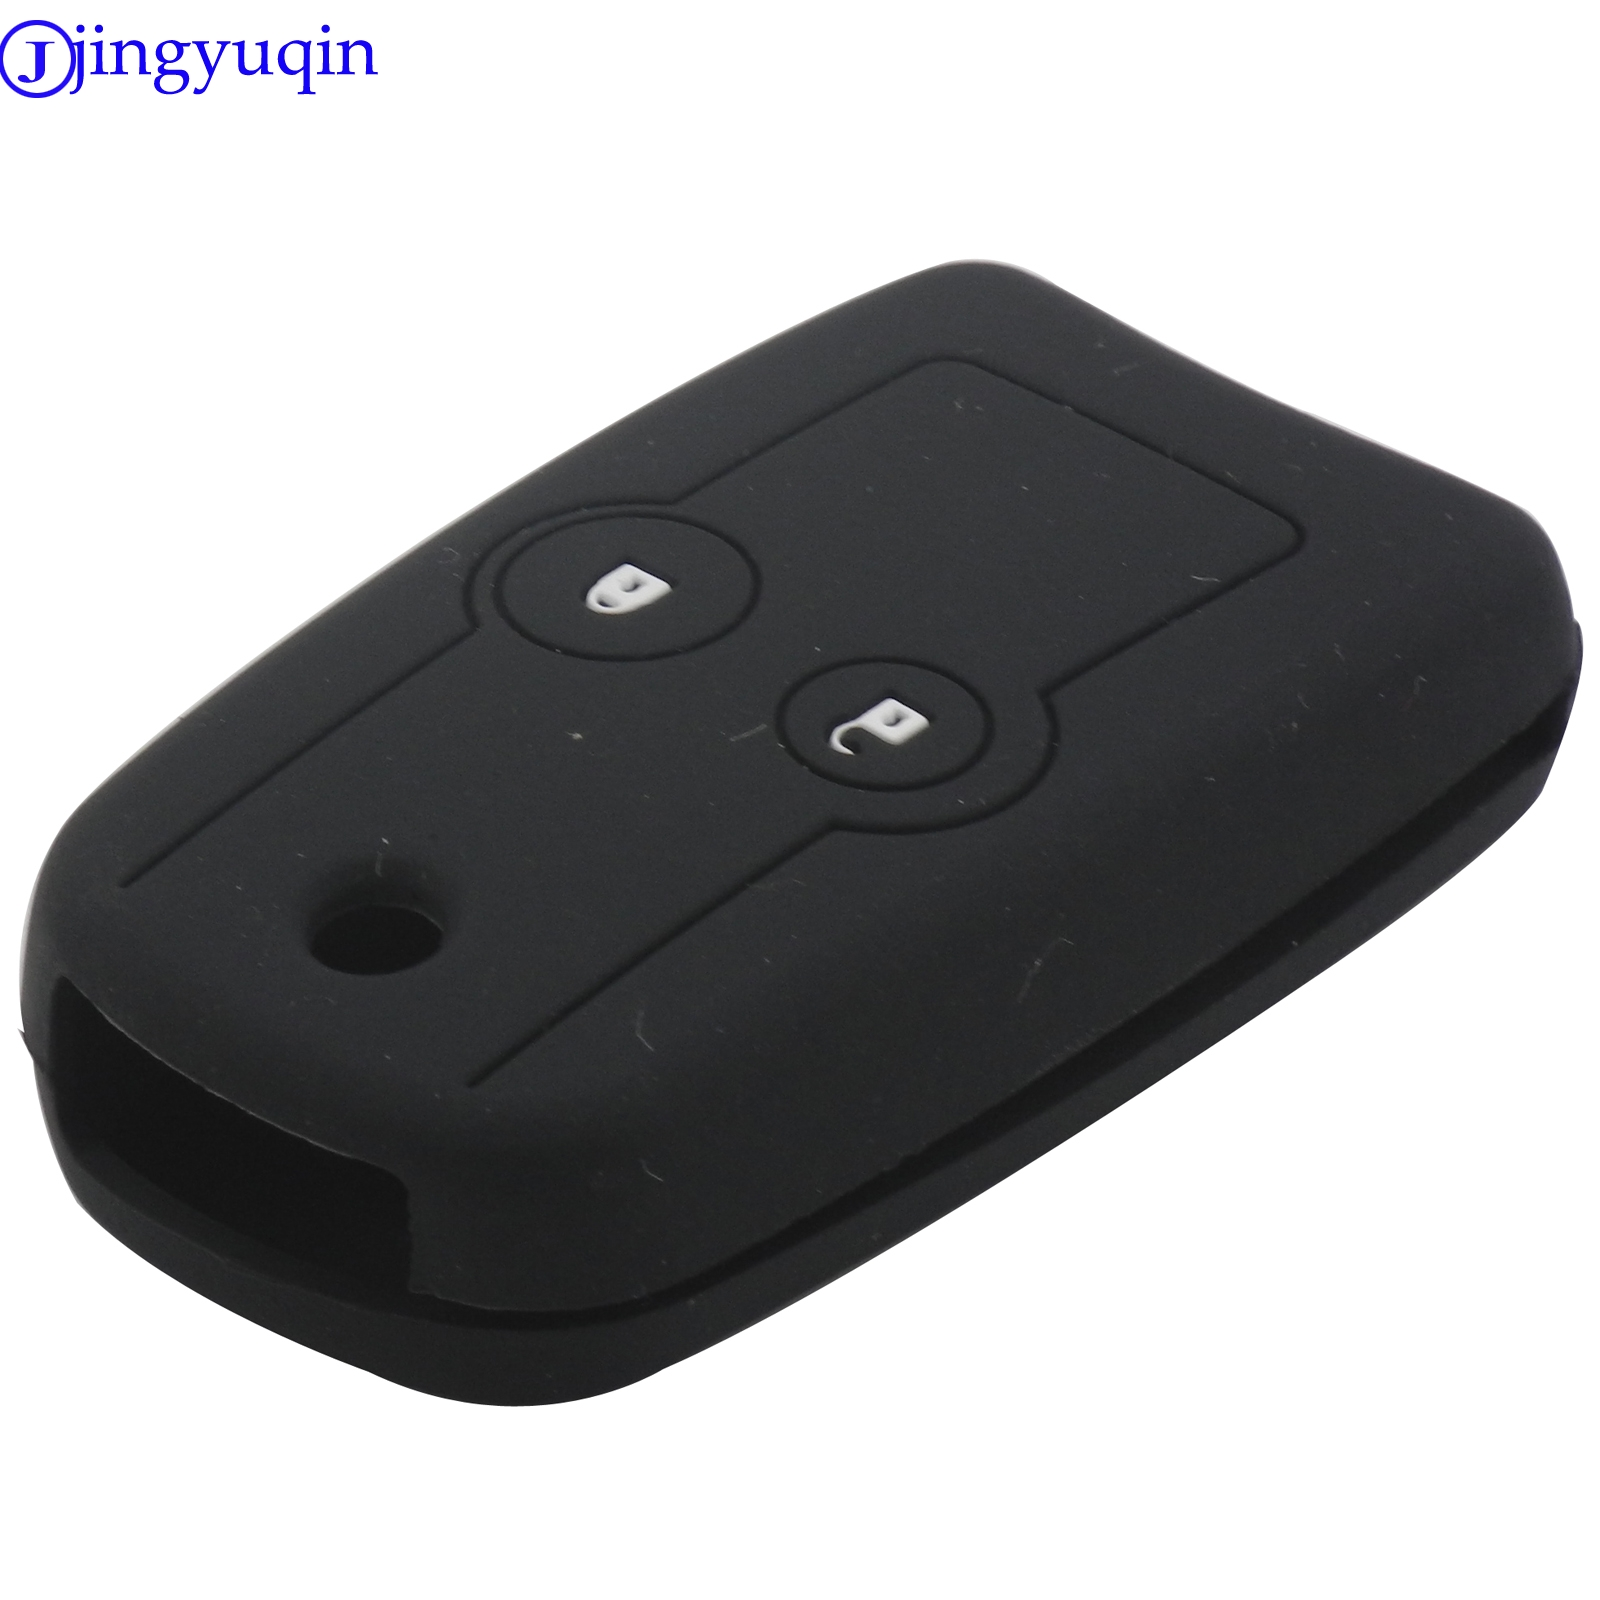 jingyuqin New <font><b>Remote</b></font> Car Key Fob Silicone Case Cover Protector For <font><b>Honda</b></font> <font><b>Accord</b></font> CRV Odyssey FIT CITY 2 Button <font><b>Flip</b></font> Folding image